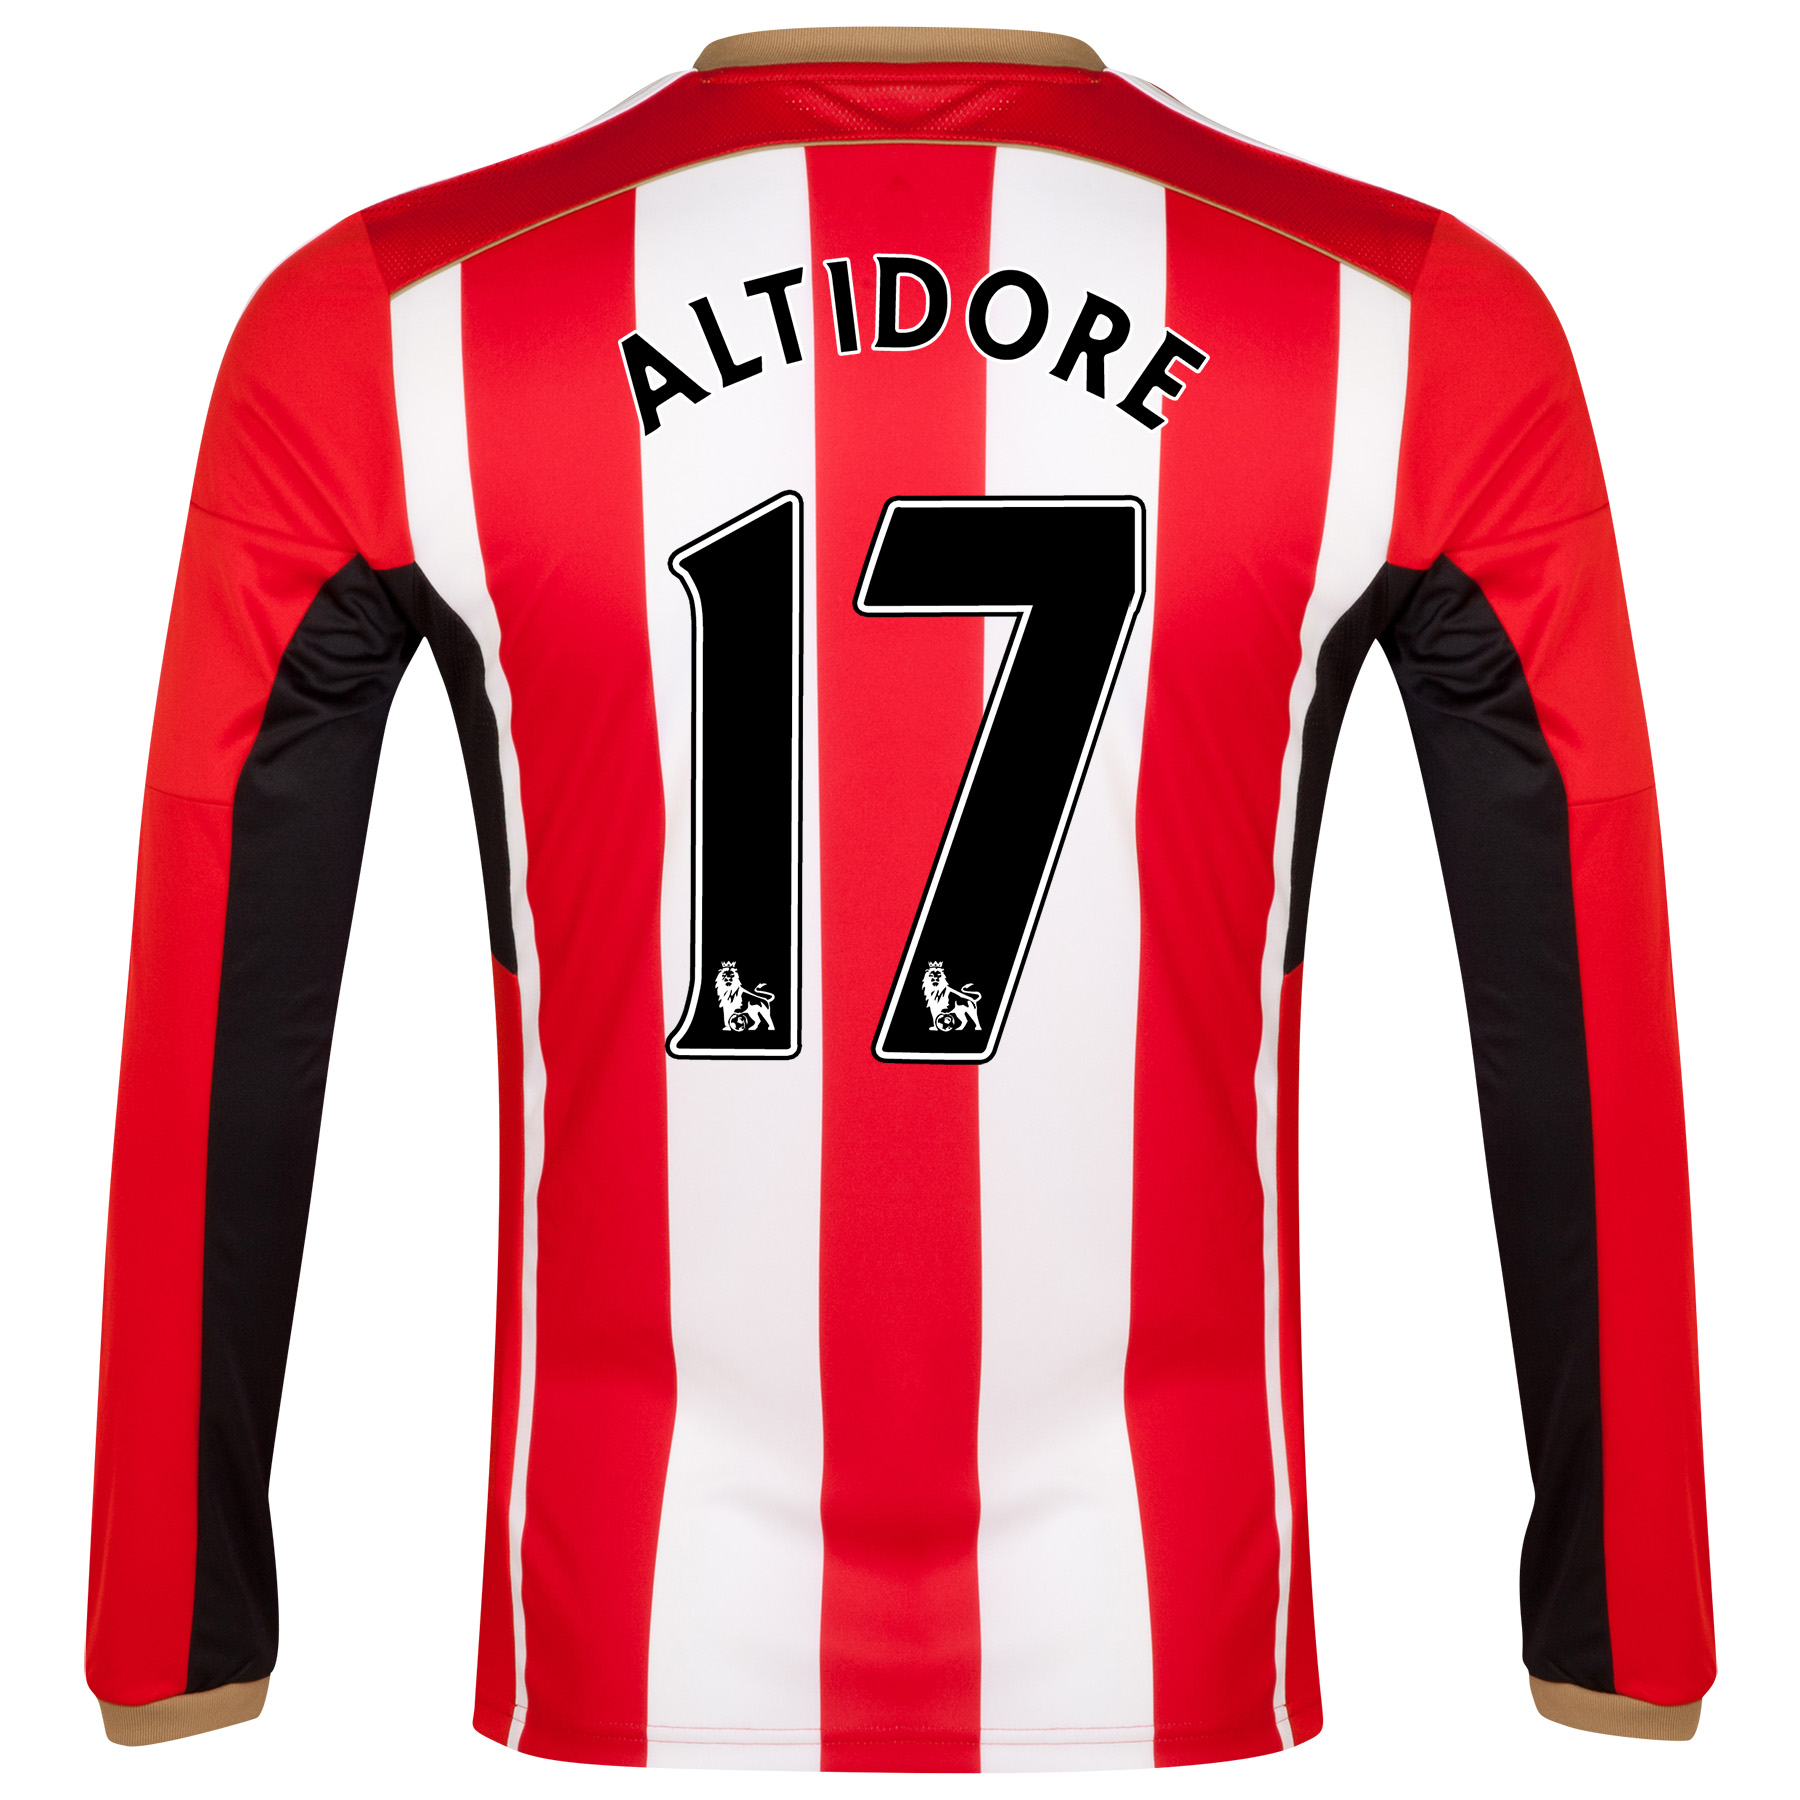 Sunderland Home Shirt 2014/15 - Long Sleeved Red with Altidore 17 printing